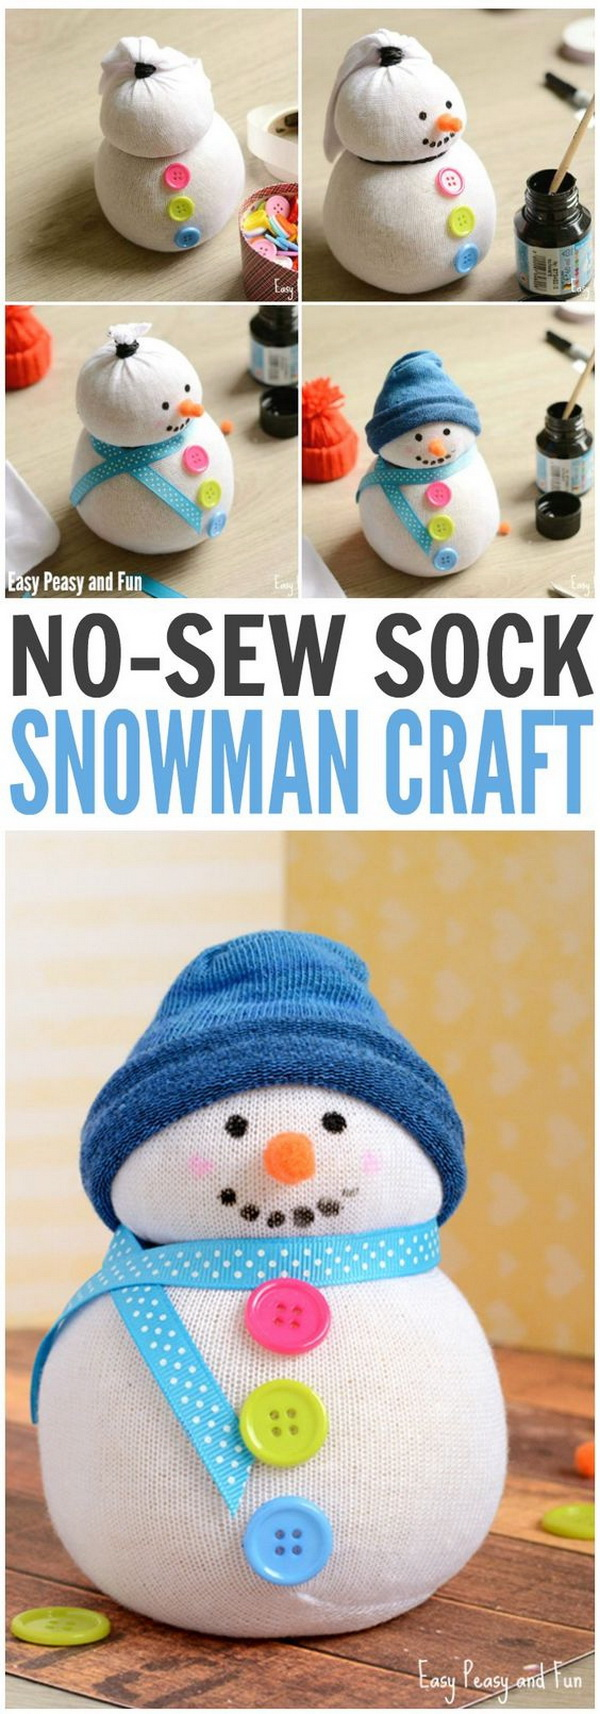 No-Sew Sock Snowman Craft. Another version of no-sew sock snowman with tutorials for you and your kids to have fun this winter season! Easy and Fun DIY Christmas crafts for You and Your Kids to Have Fun.